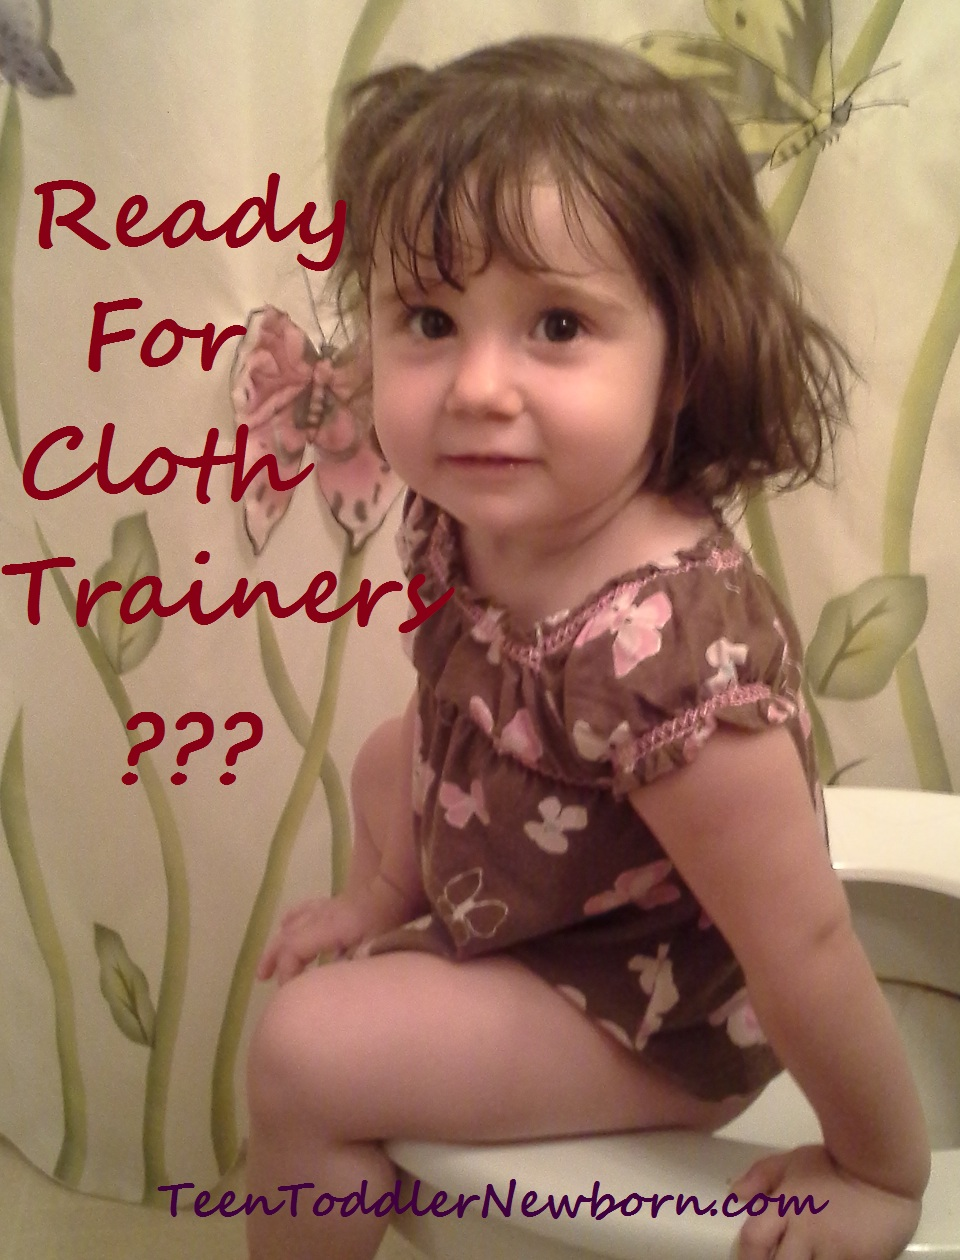 nude toddlers Are you ready?